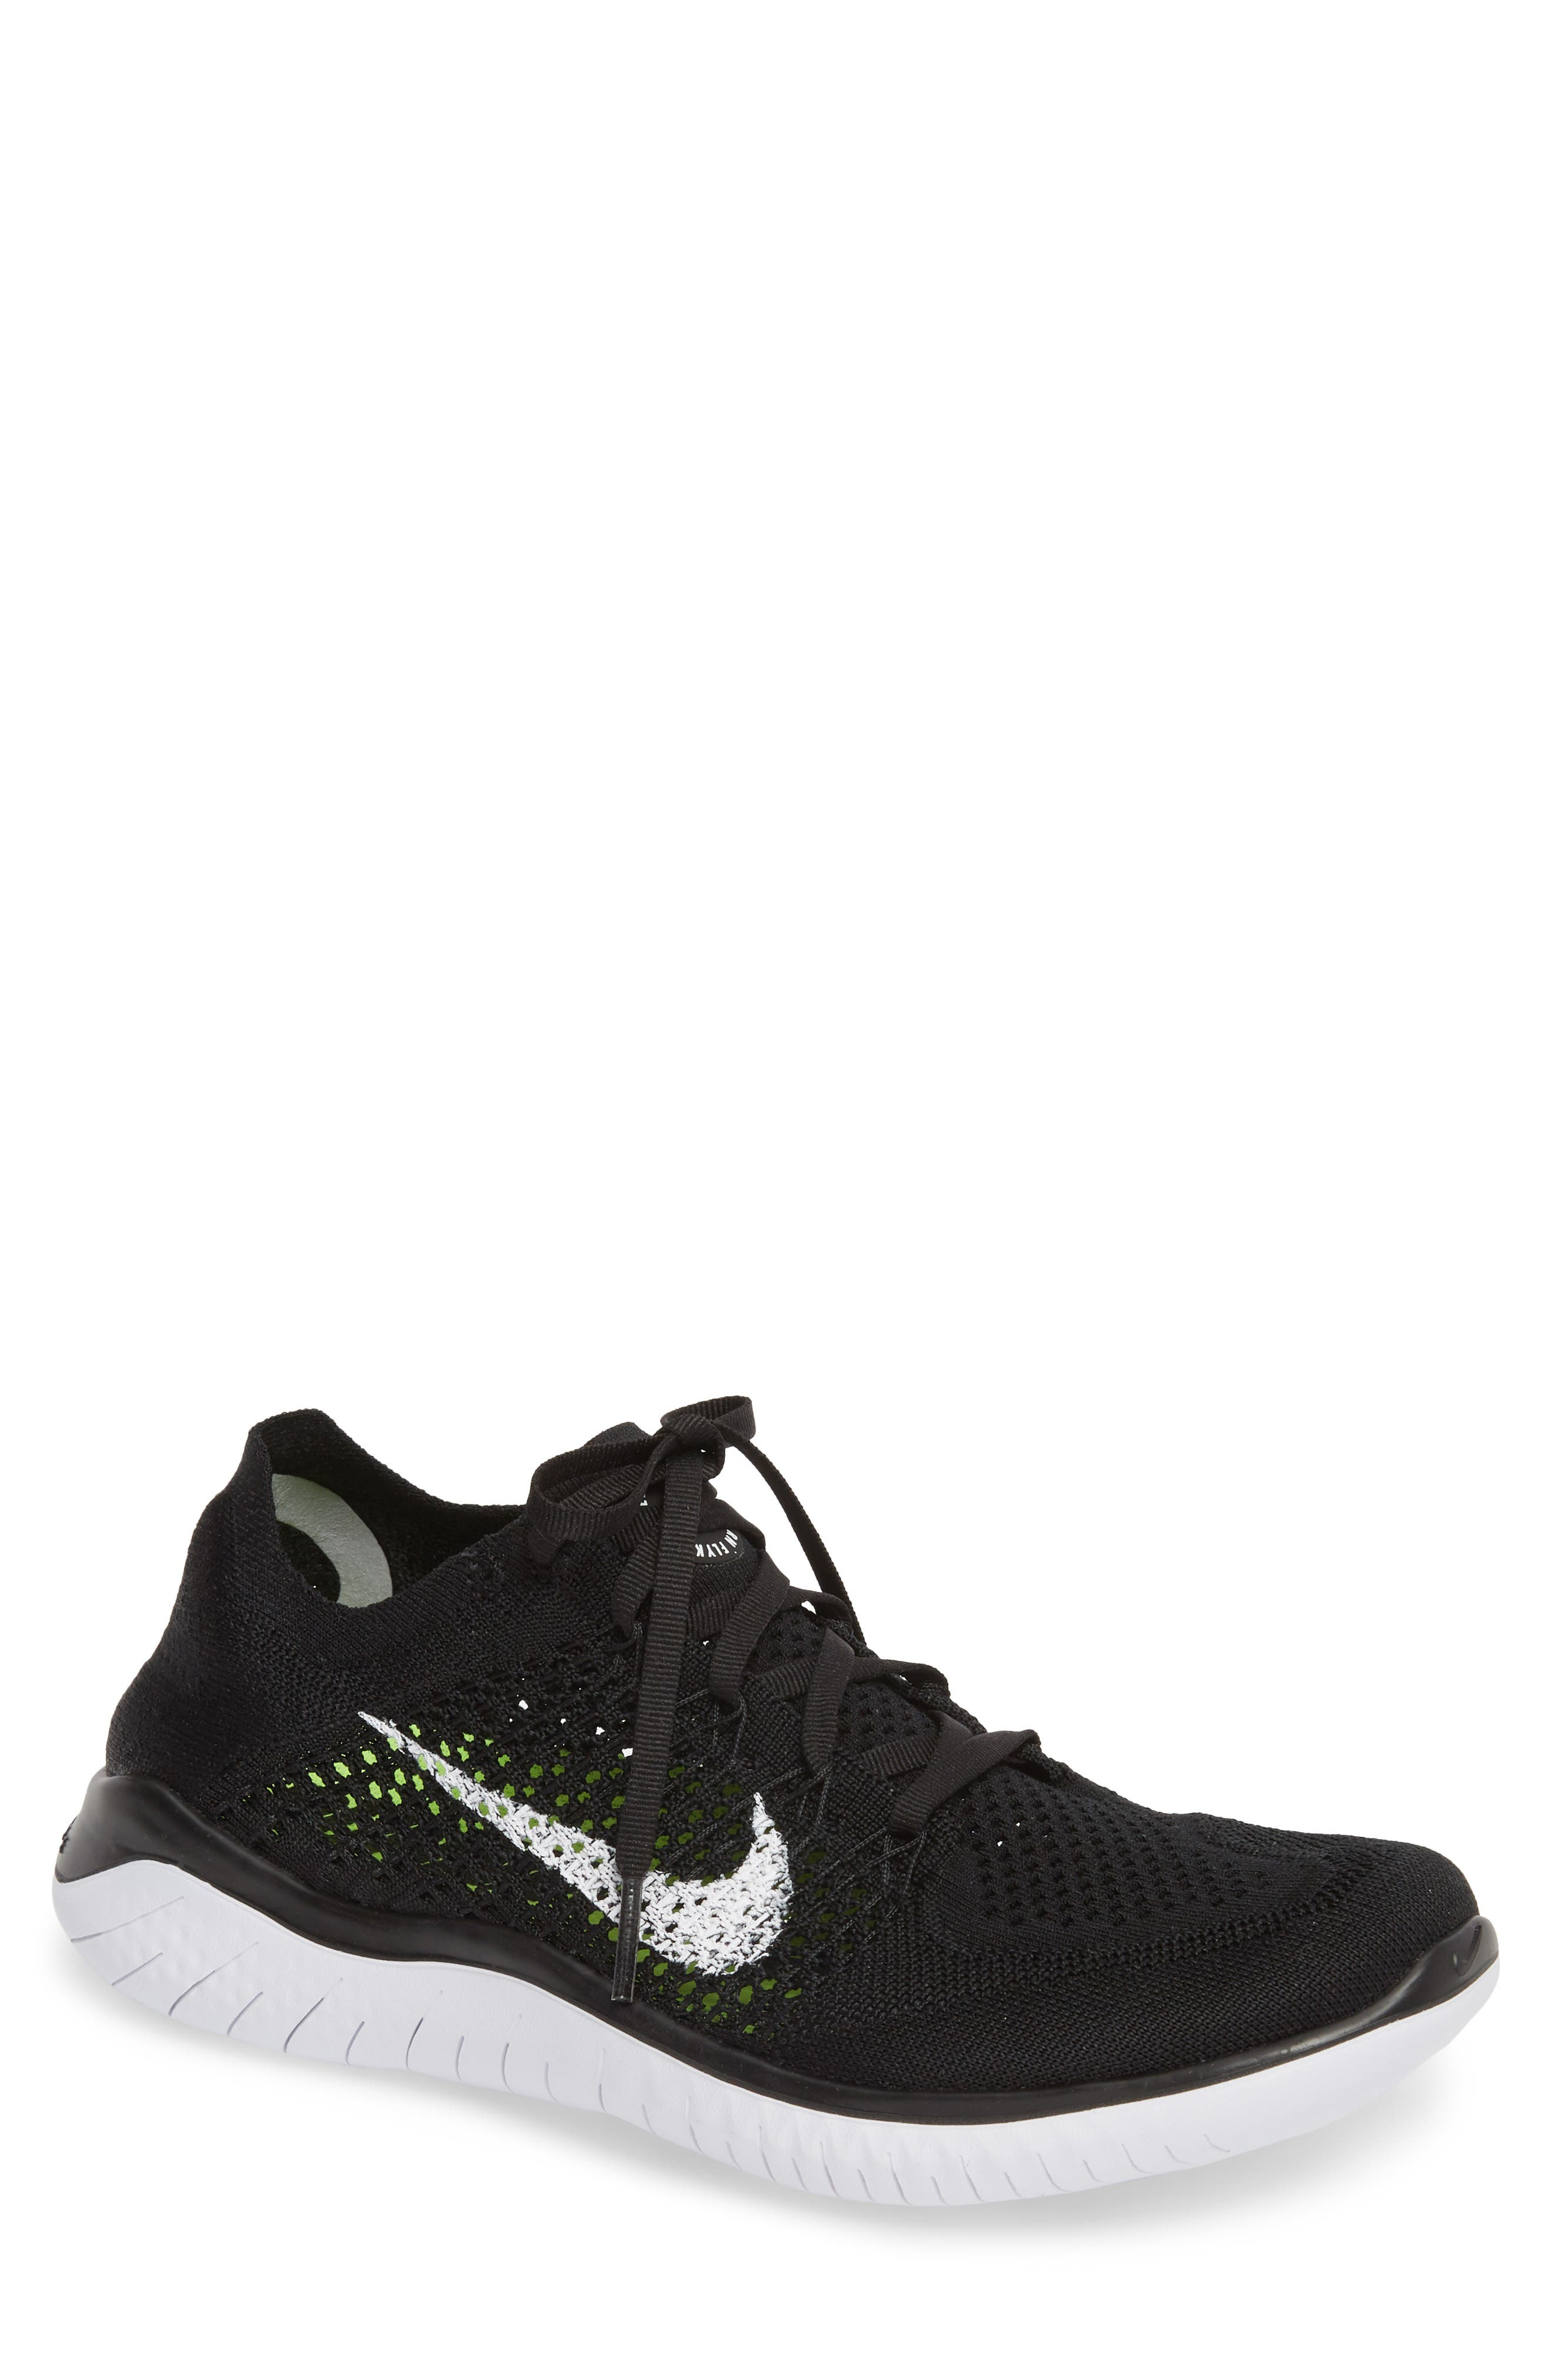 Free RN Flyknit 2018 Running Shoe, Main, color, BLACK/ WHITE